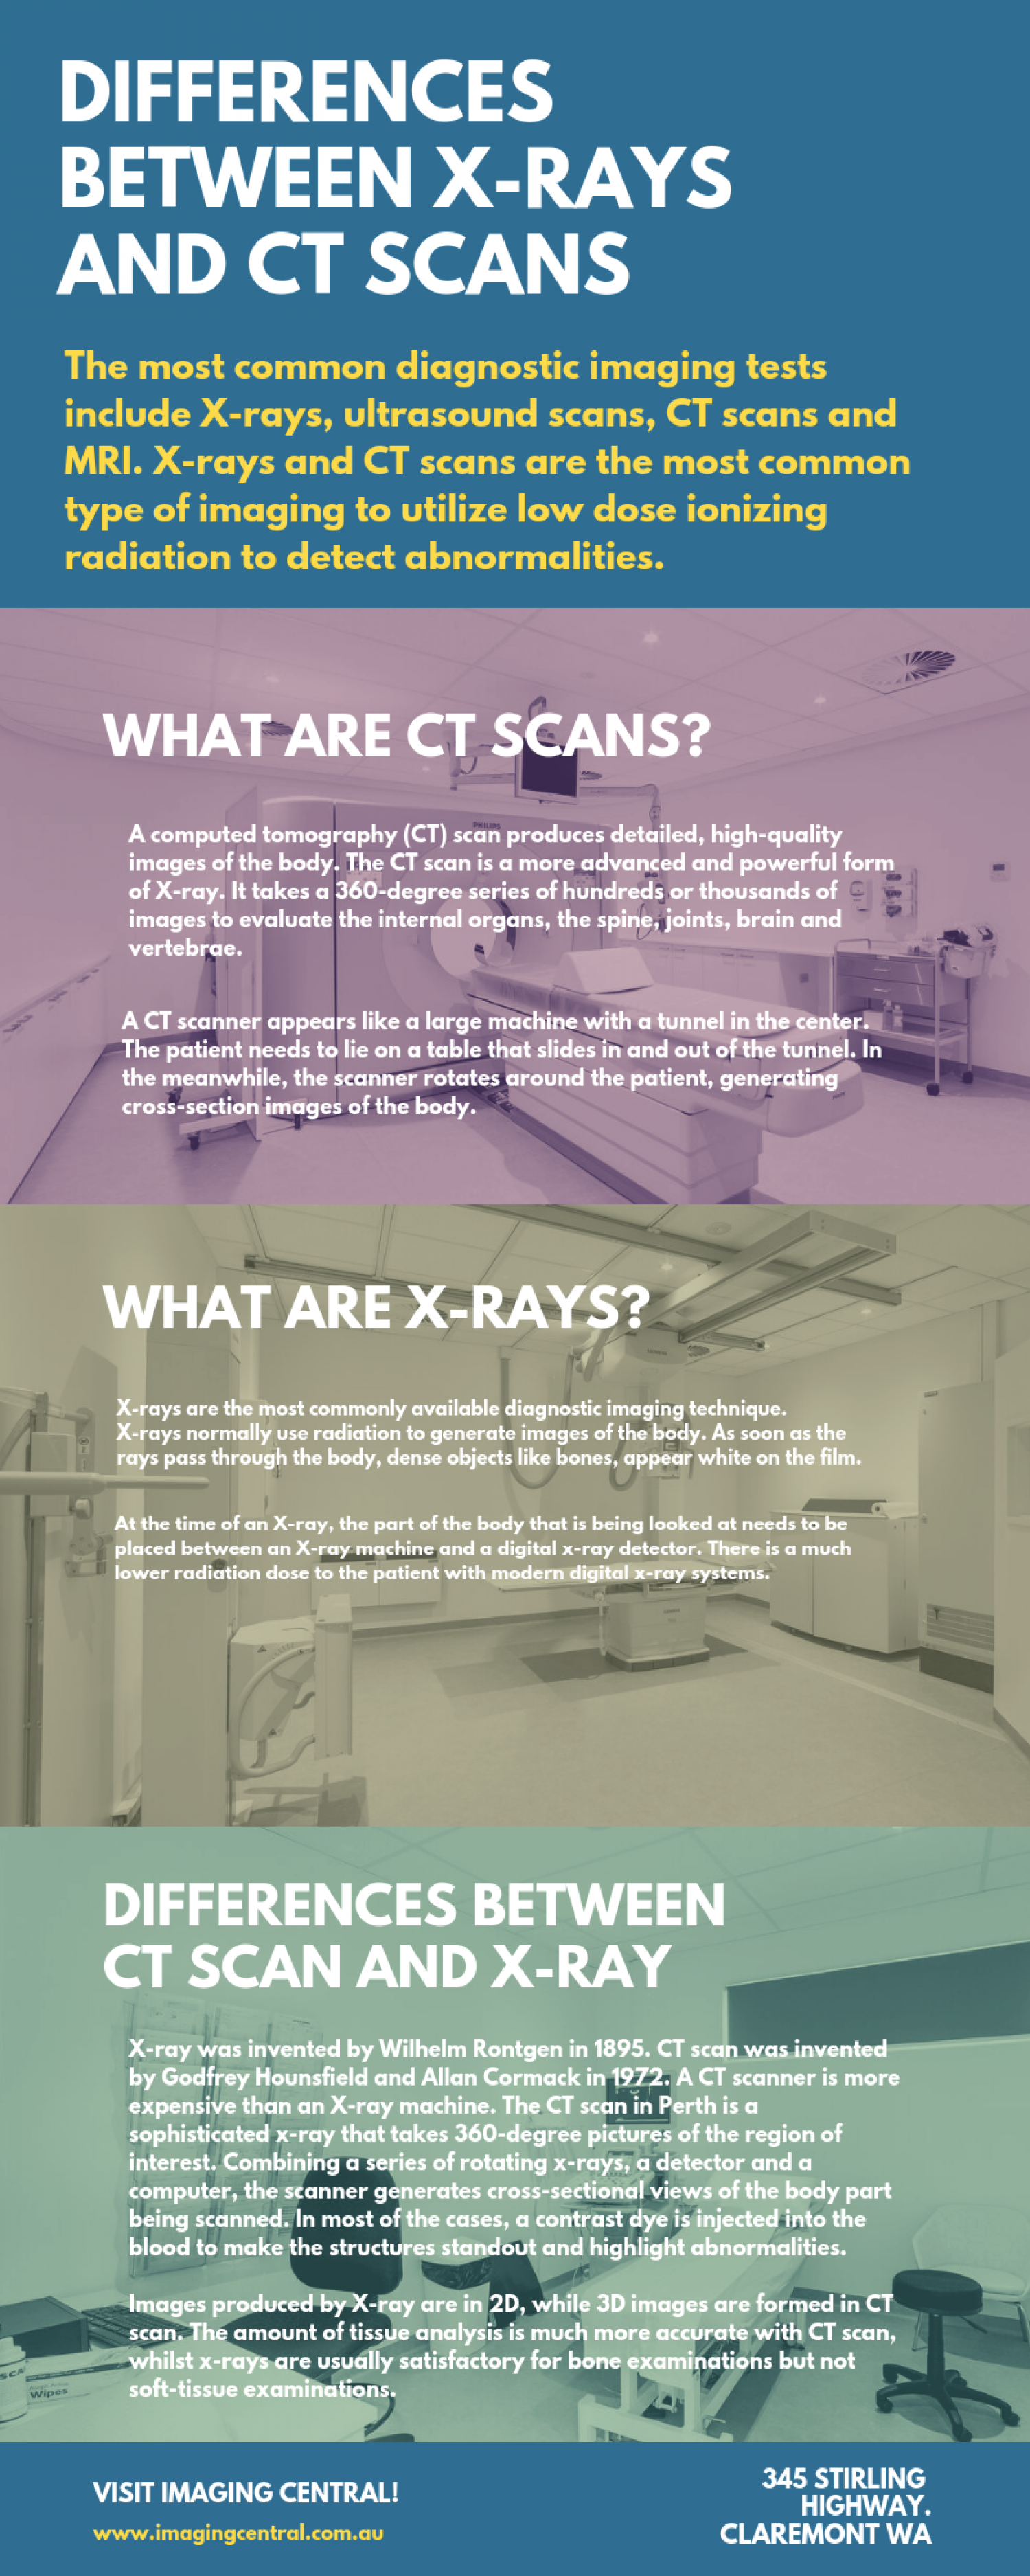 Differences between X-rays and CT scans